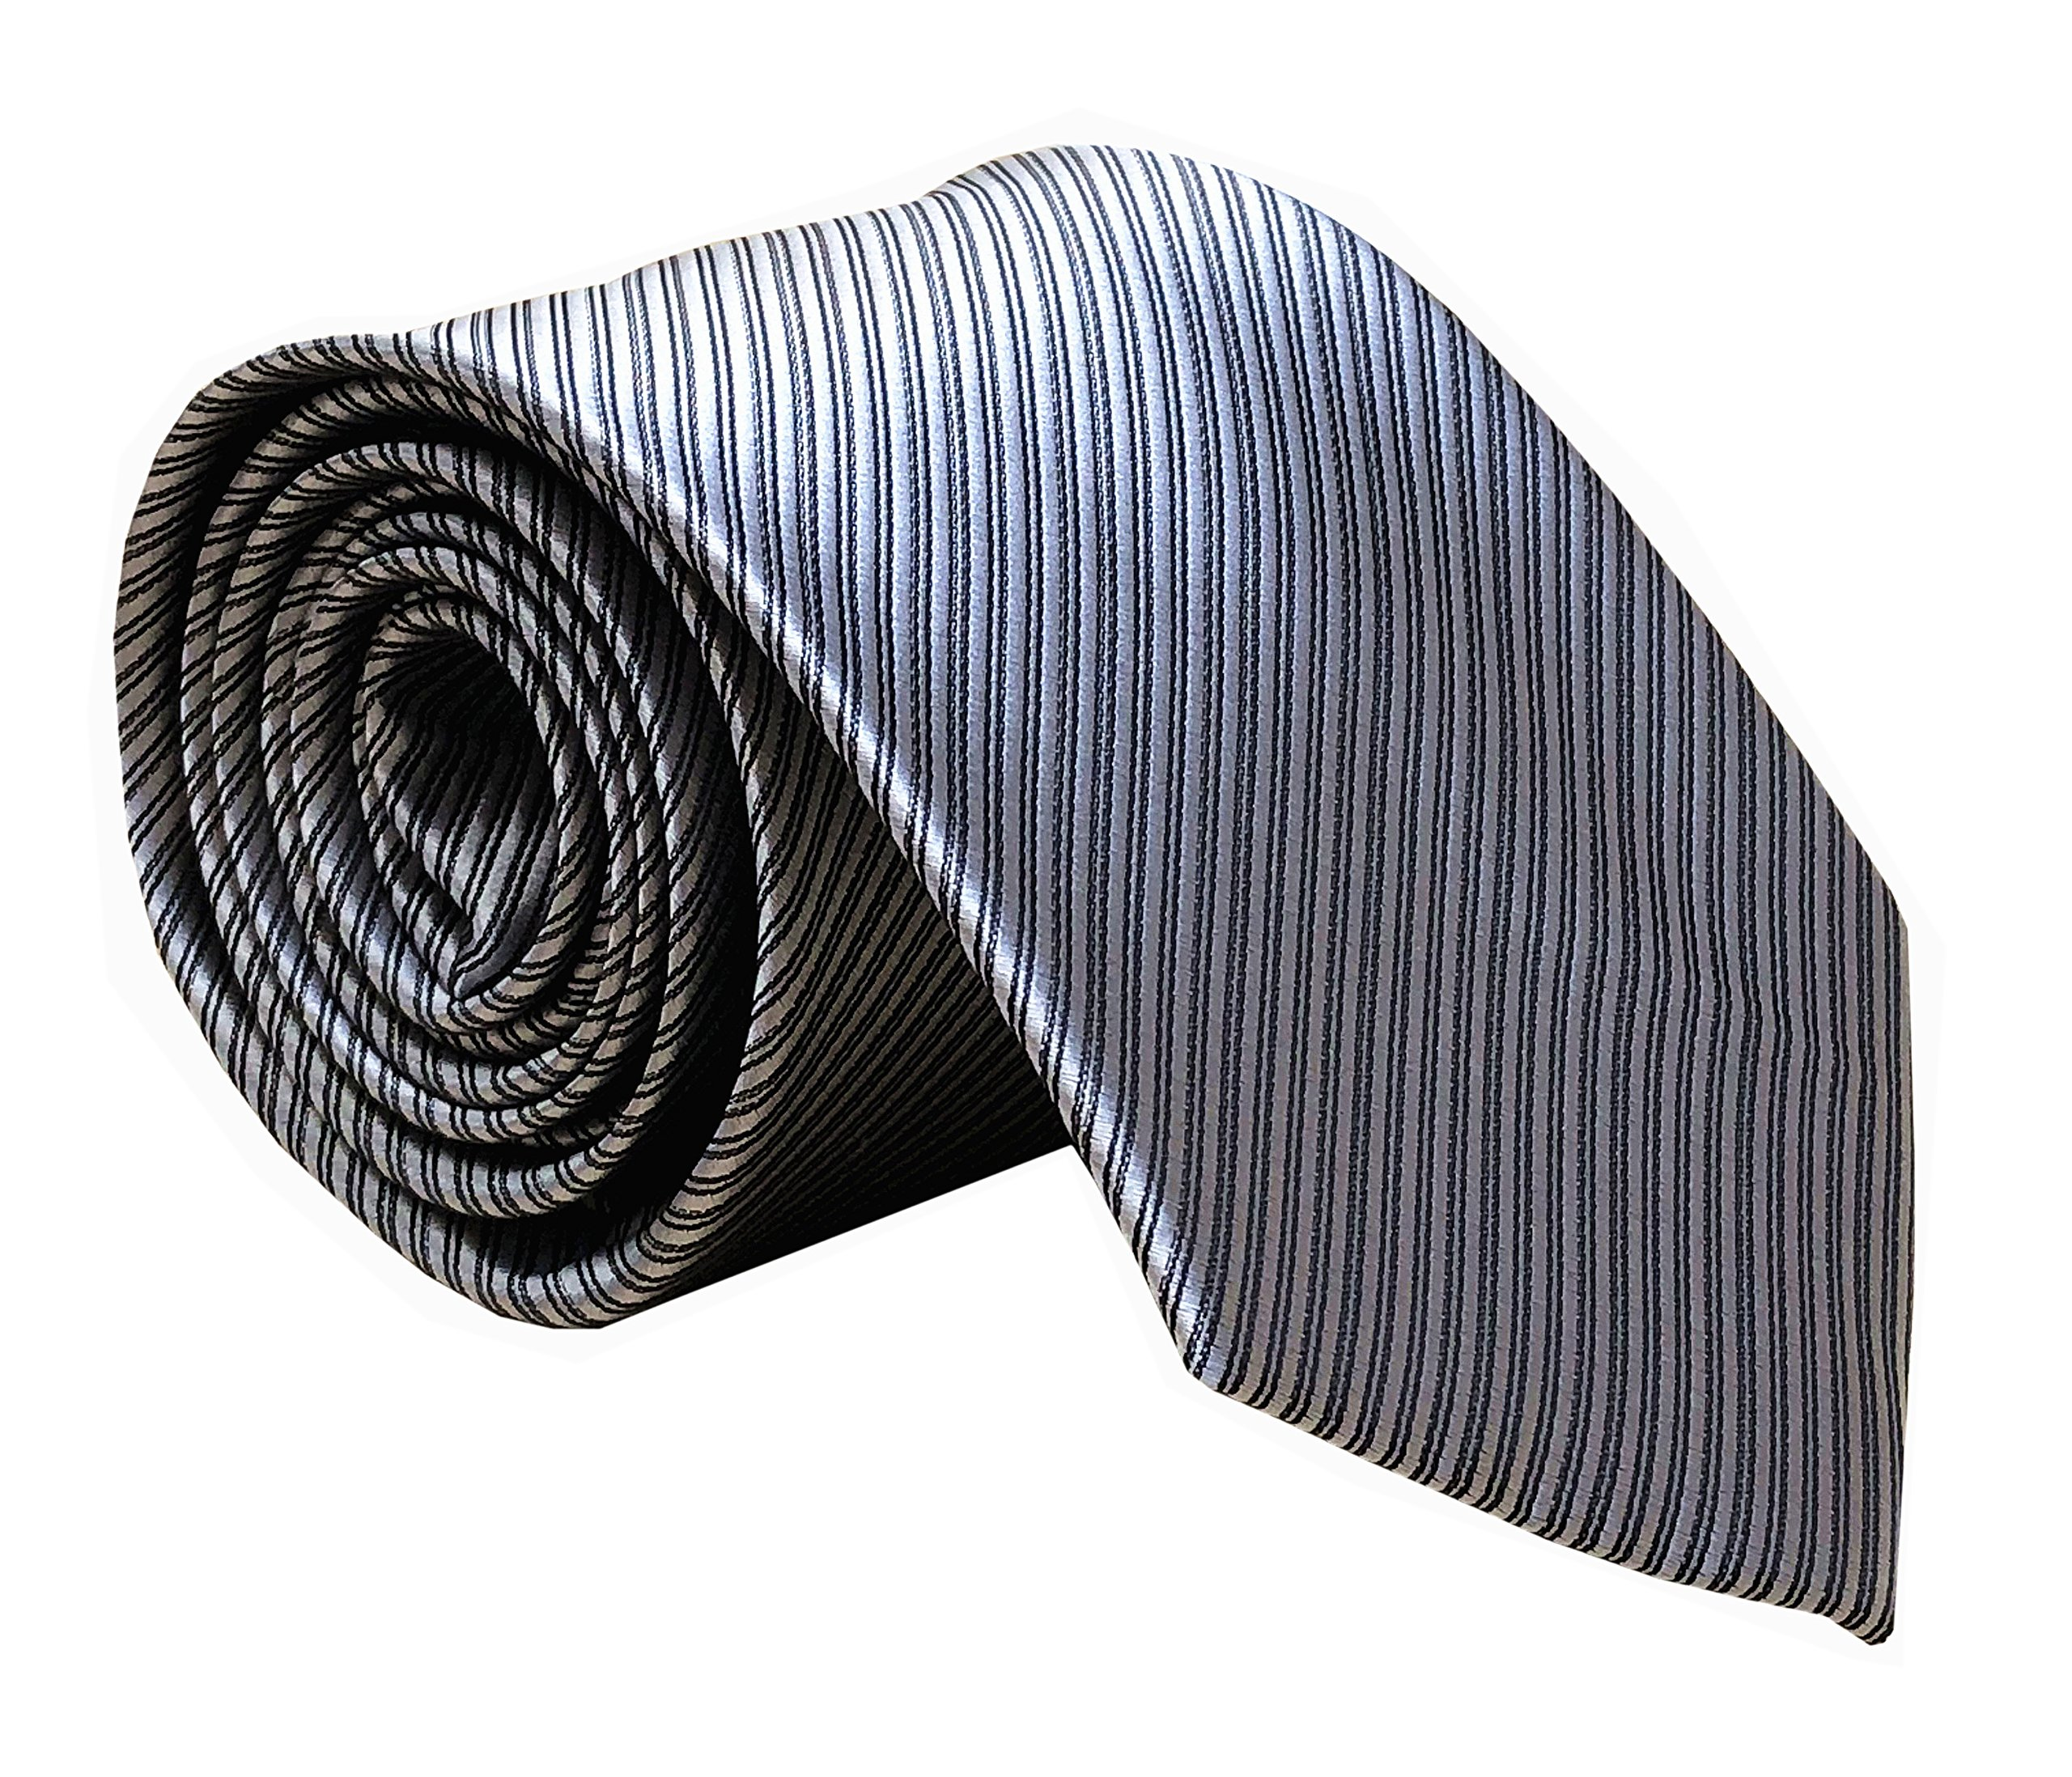 Secdtie Men's Repp Silver Grey Silk Ties Fine Striped Jacquard Working Neckties